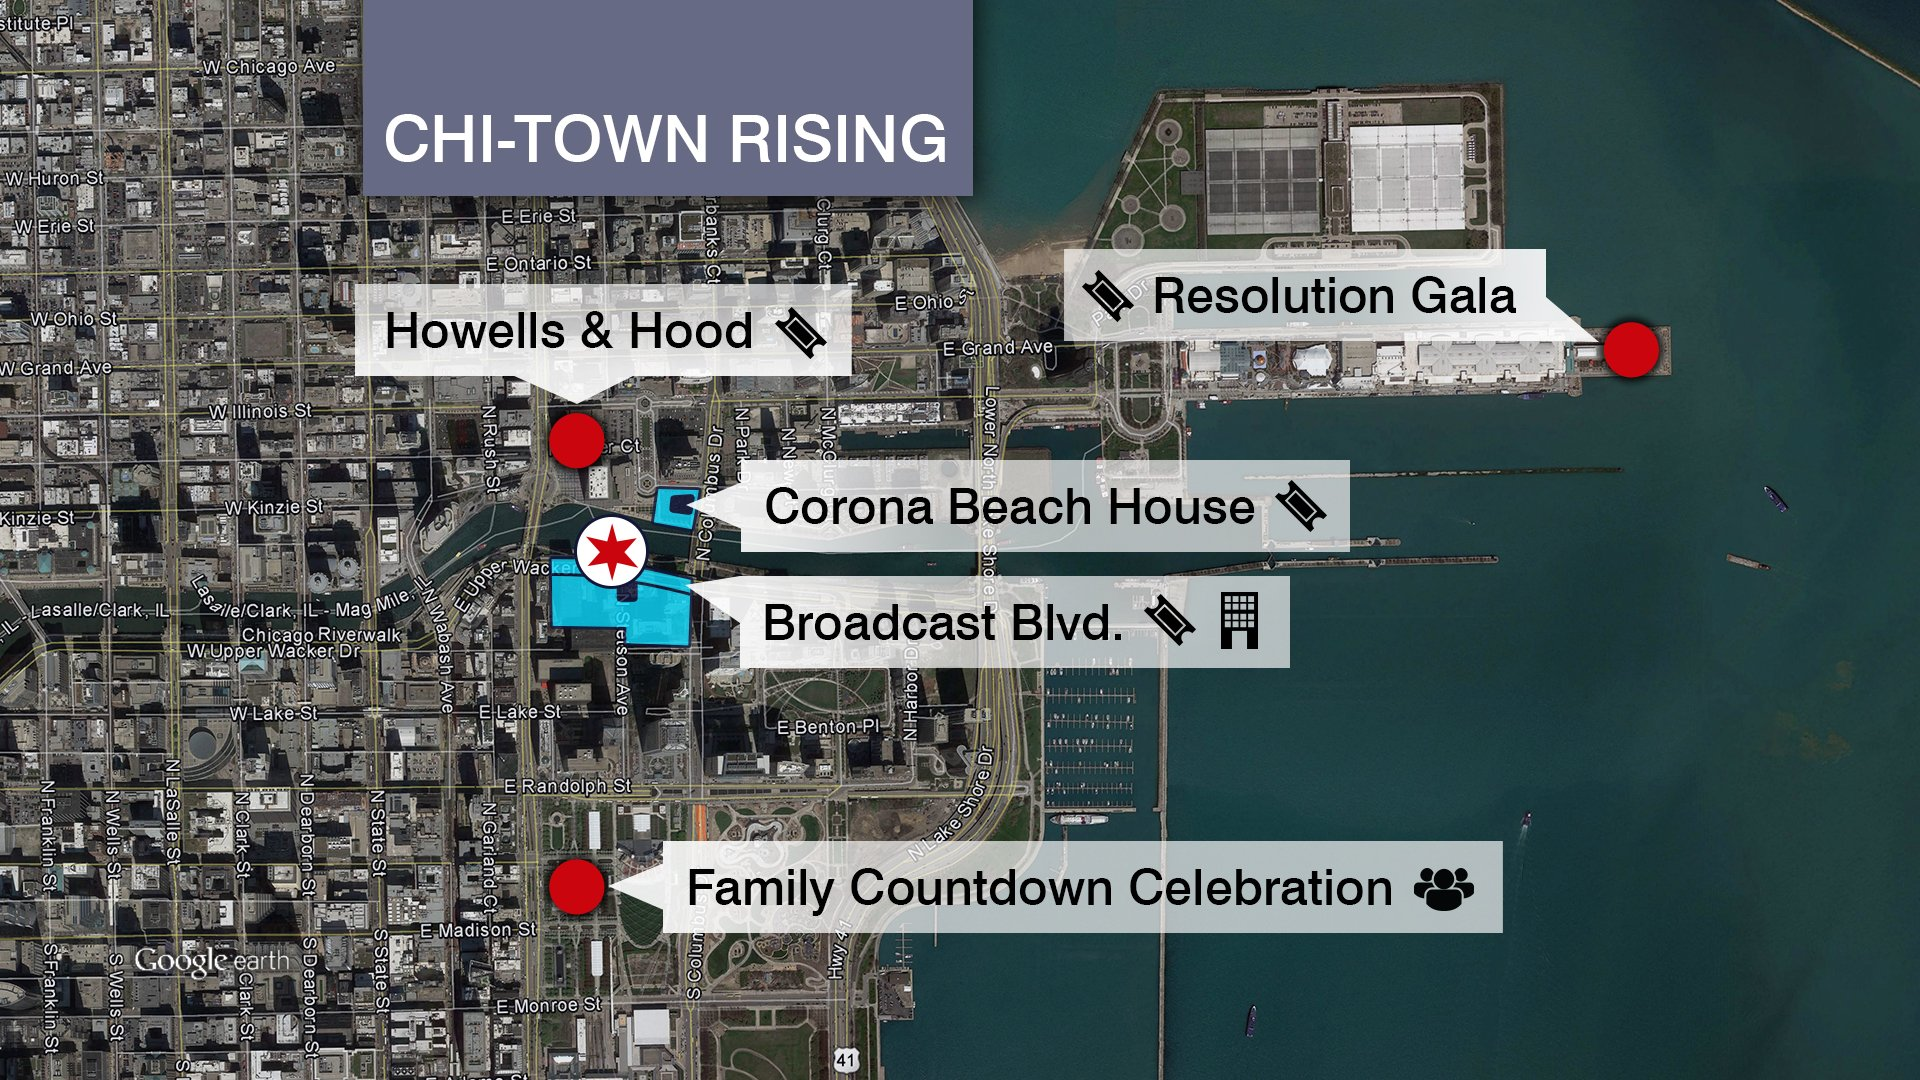 A map shows the locations of Chi-Town Rising events